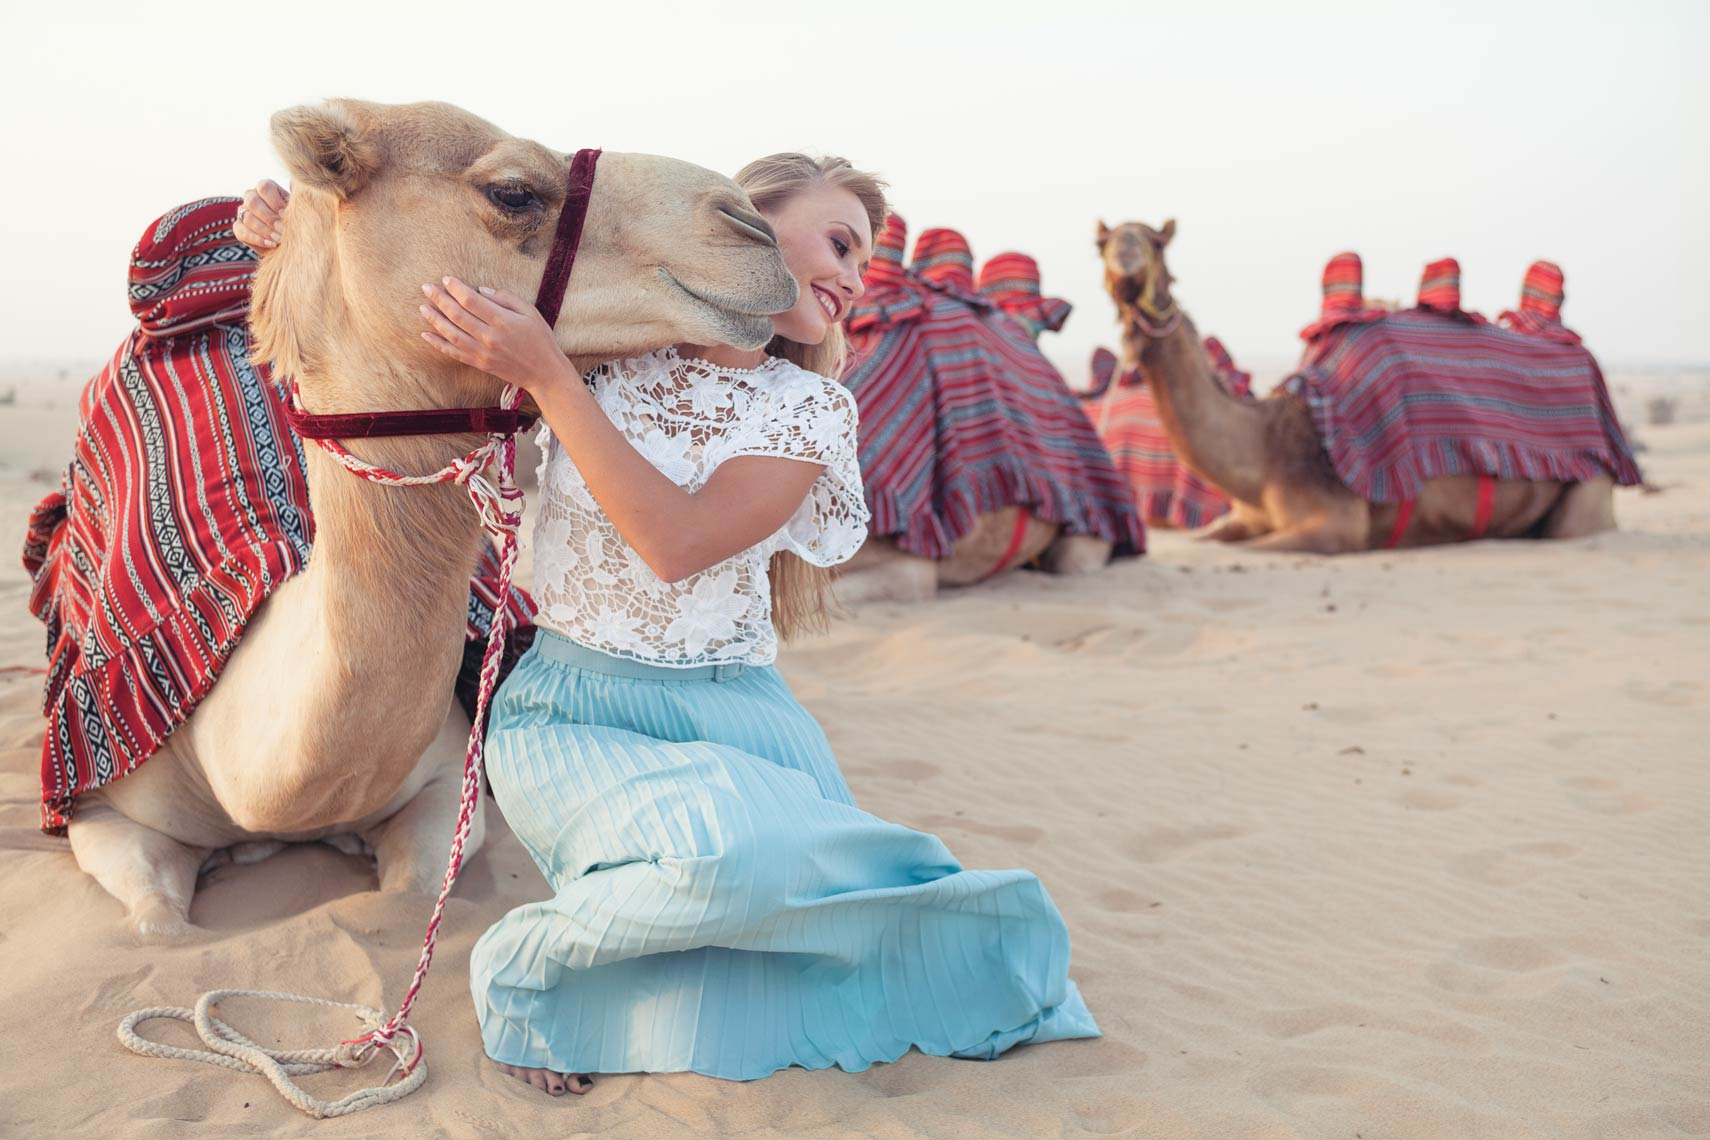 A woman with a camel kissing her face in the U.A.E. desert.